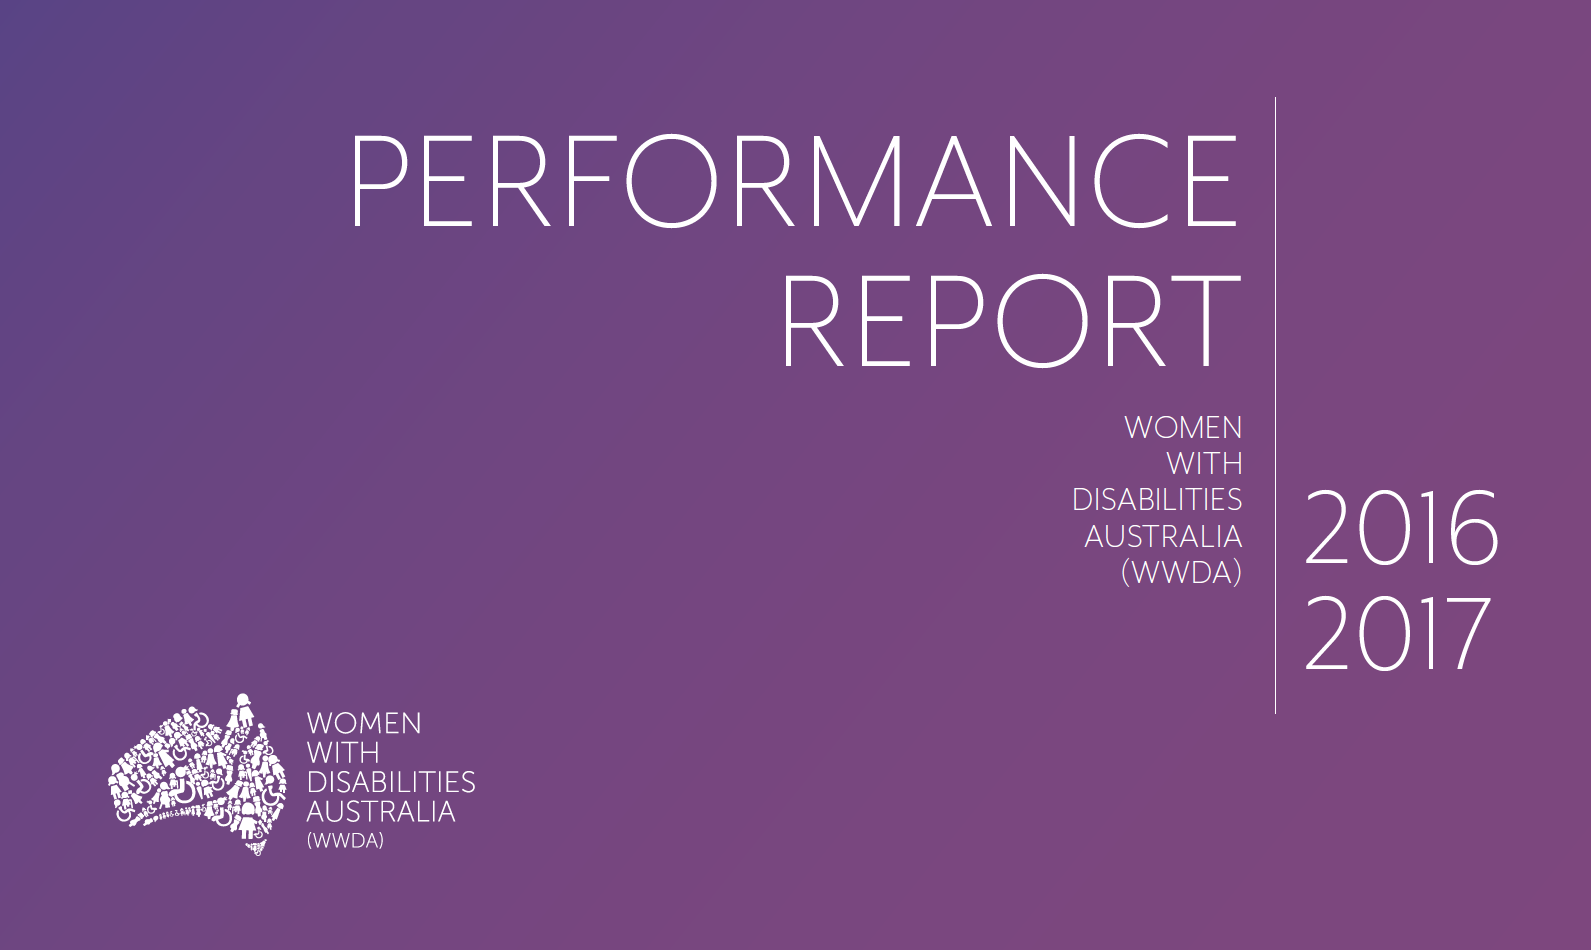 Purple image with white text: 'Performance Report 2016 2017 Women With Disabilities Australia.'